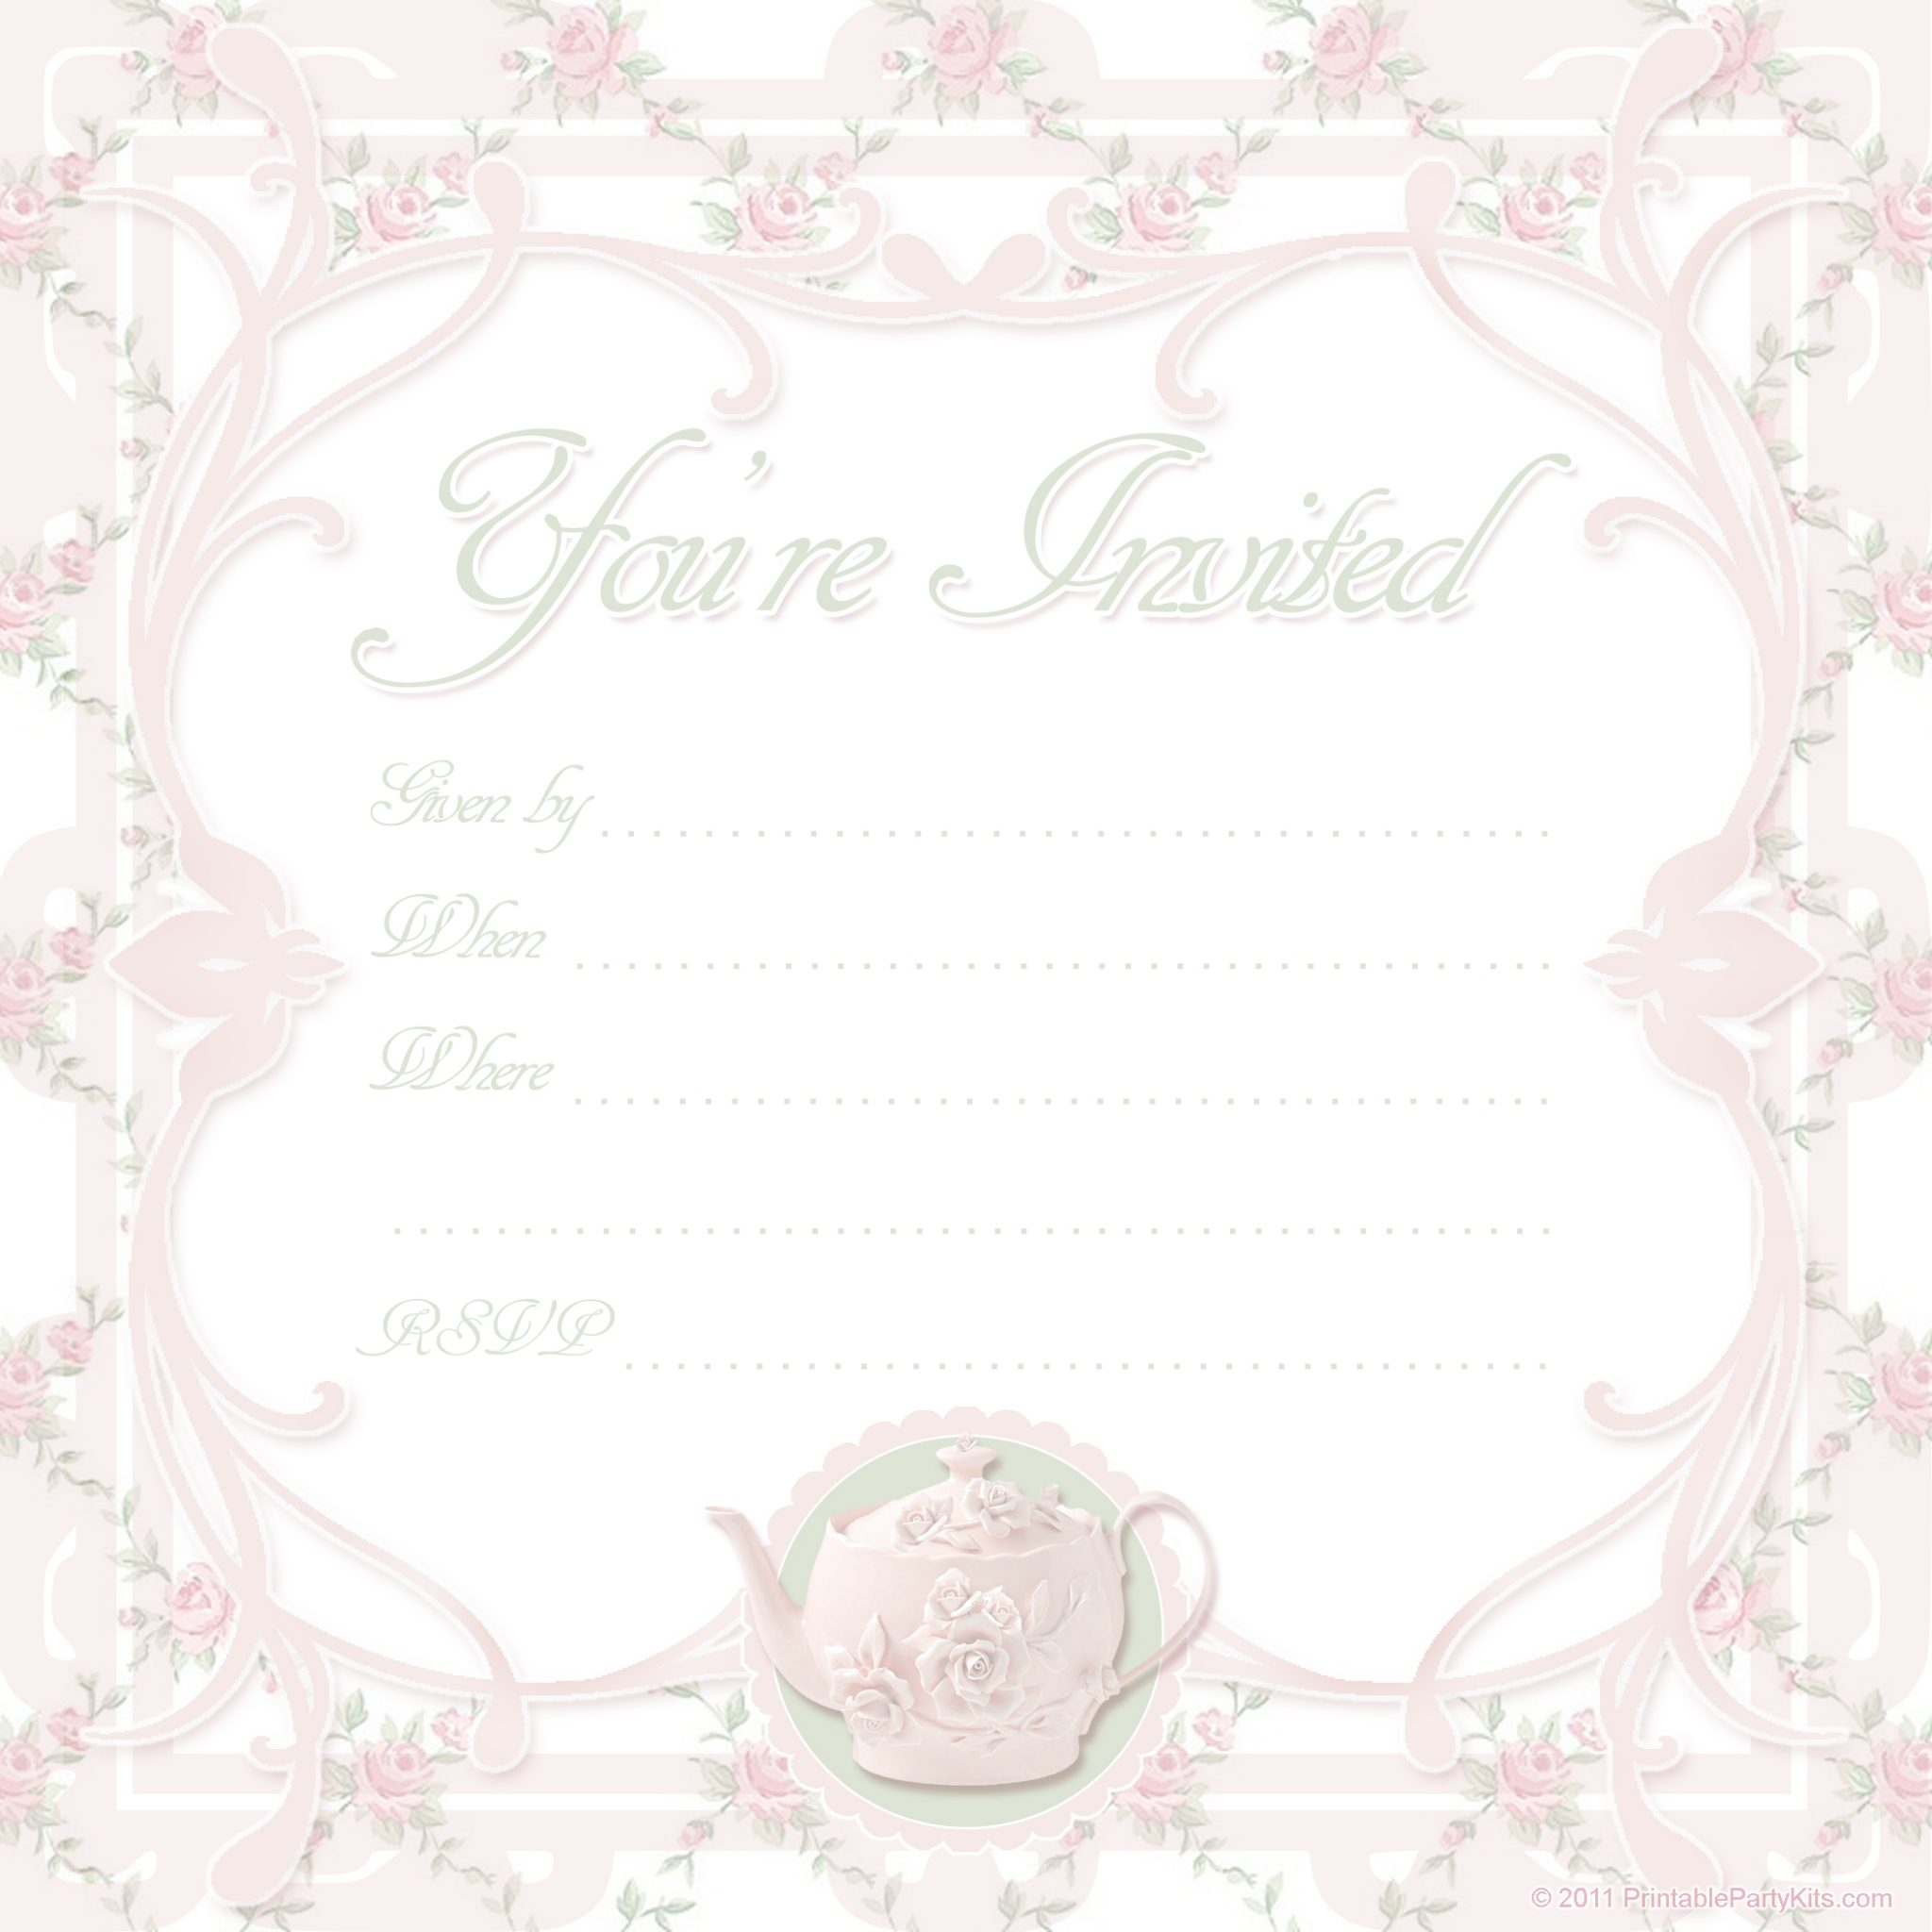 Christening Invitation Cards Templates for nice invitation template